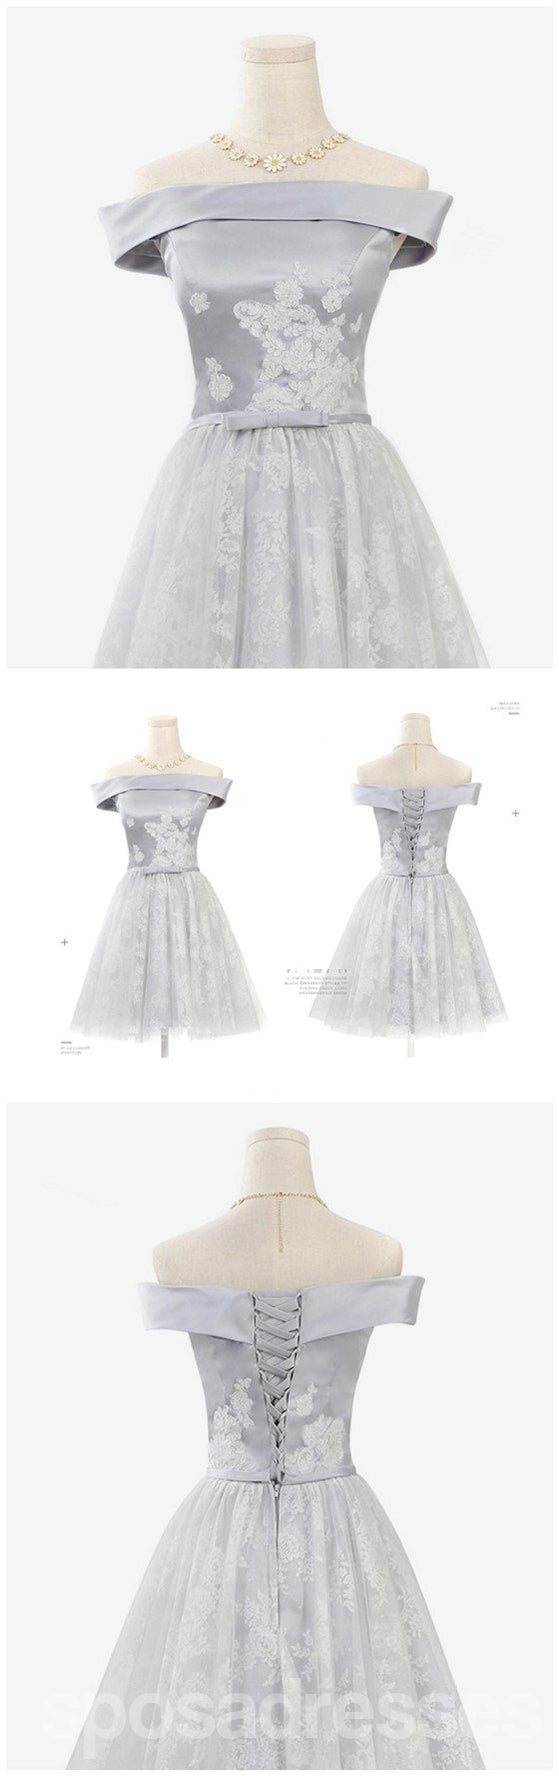 Off Shoulder Gray Lace Cute Homecoming Prom Dresses, Affordable Short Party Prom Sweet 16 Dresses, Perfect Homecoming Cocktail Dresses, CM345